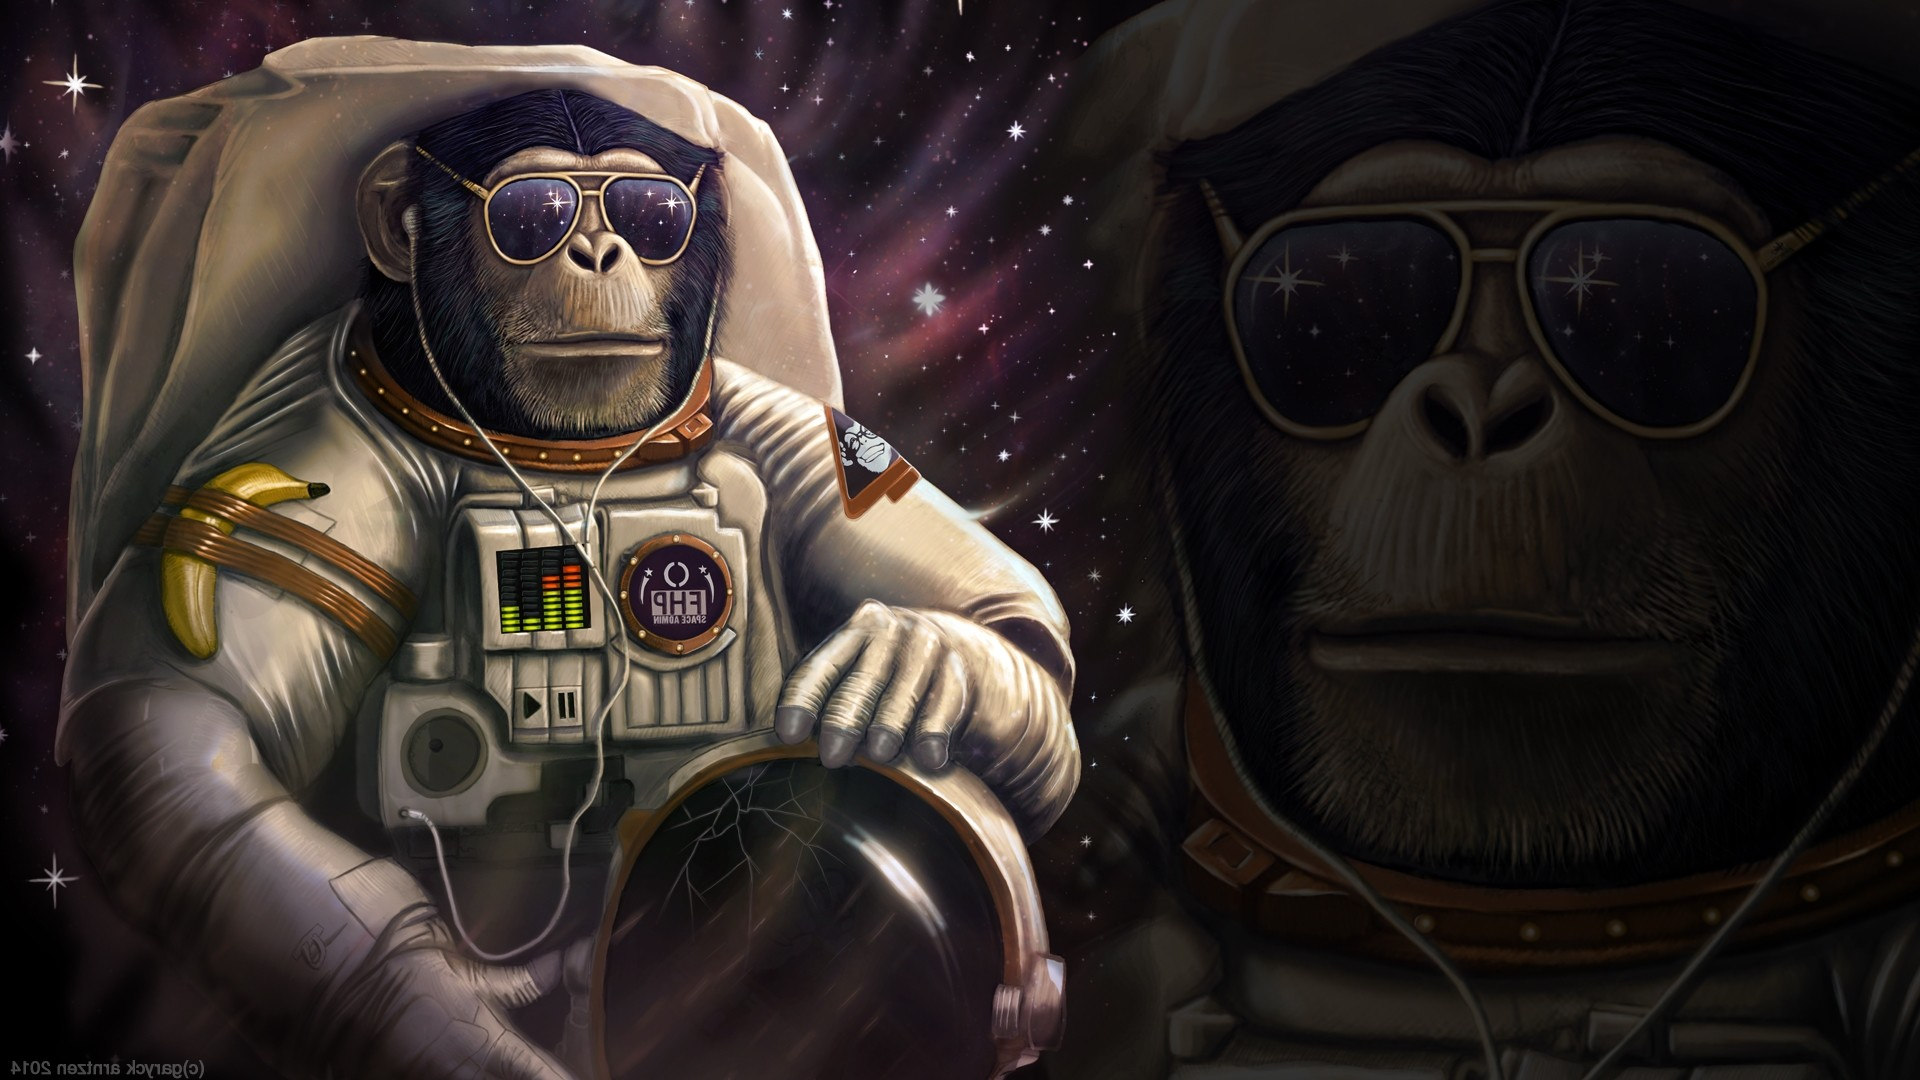 Res: 1920x1080,  Monkey Astronaut Wallpapers HD Desktop and Mobile Backgrounds